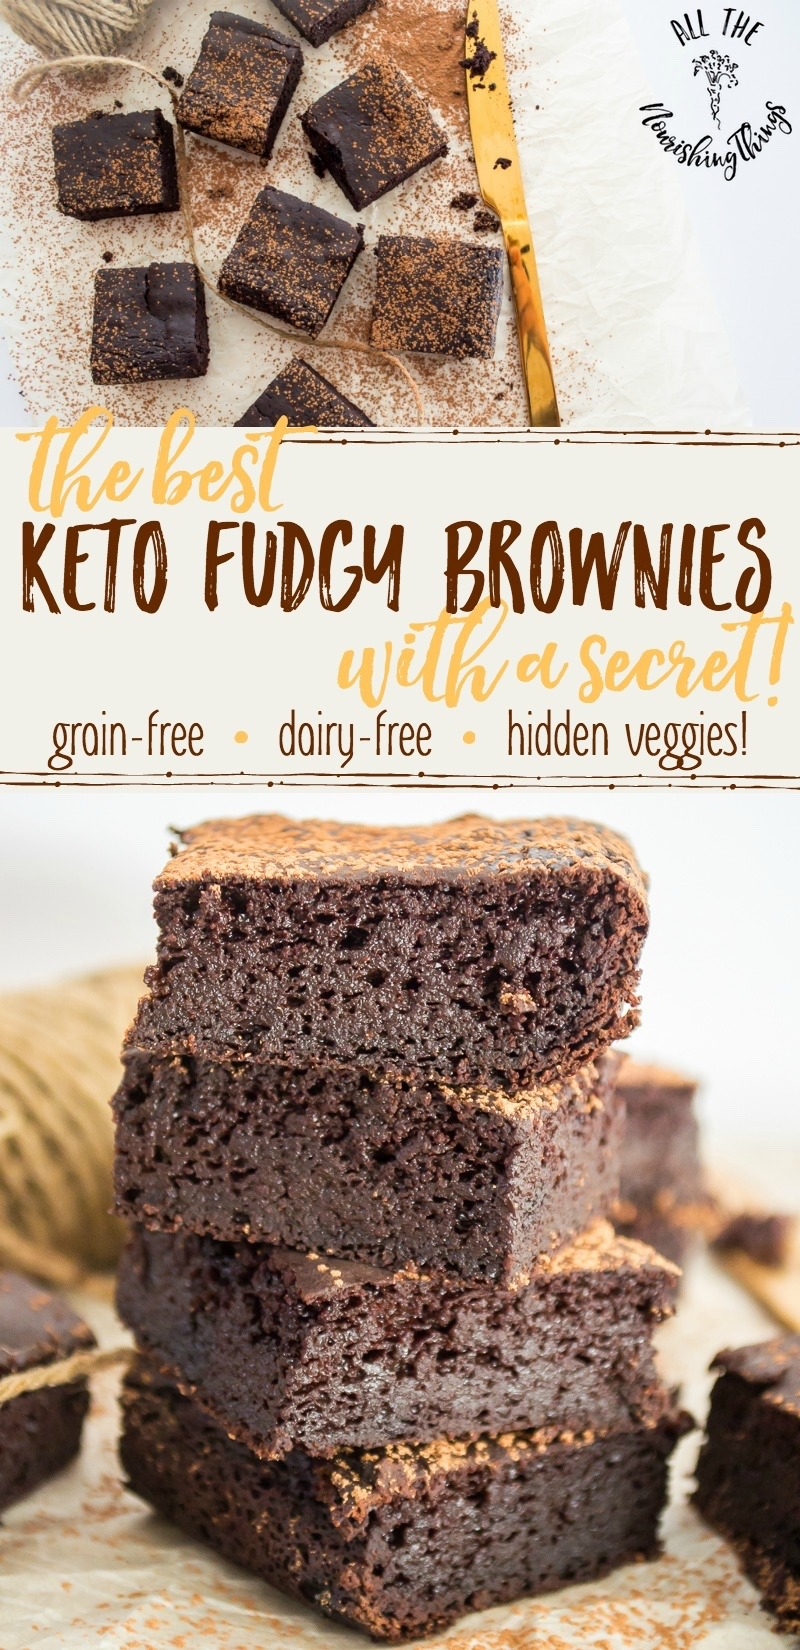 stack of best keto fudgy brownies with text overlay